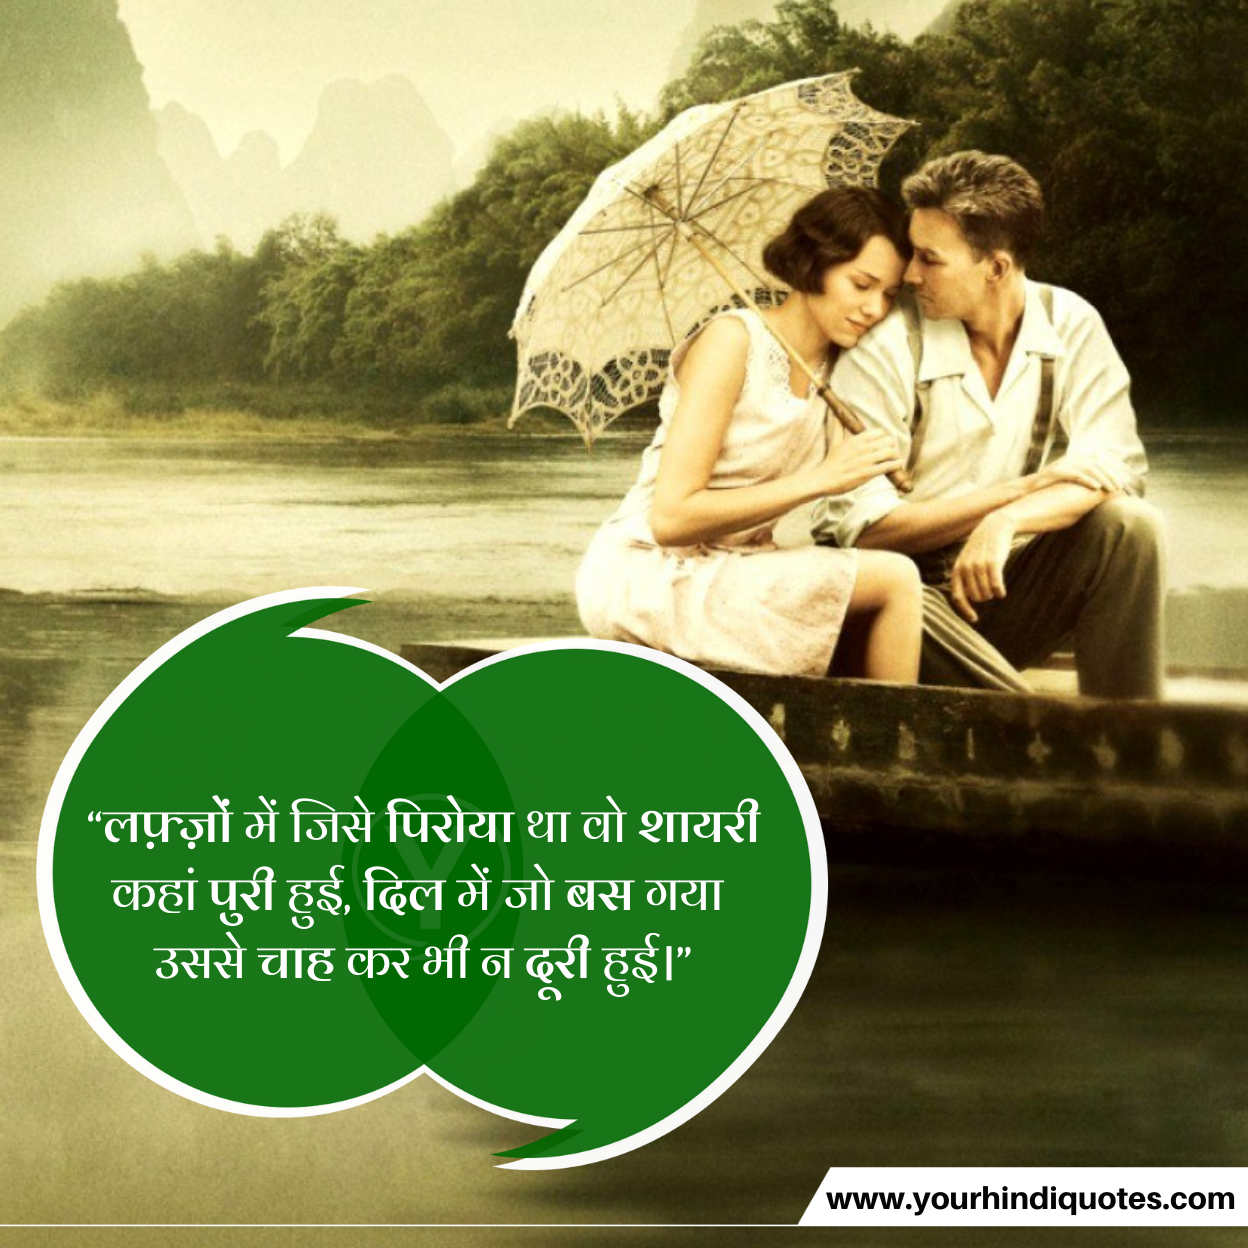 Sad Shayari Hindi Image